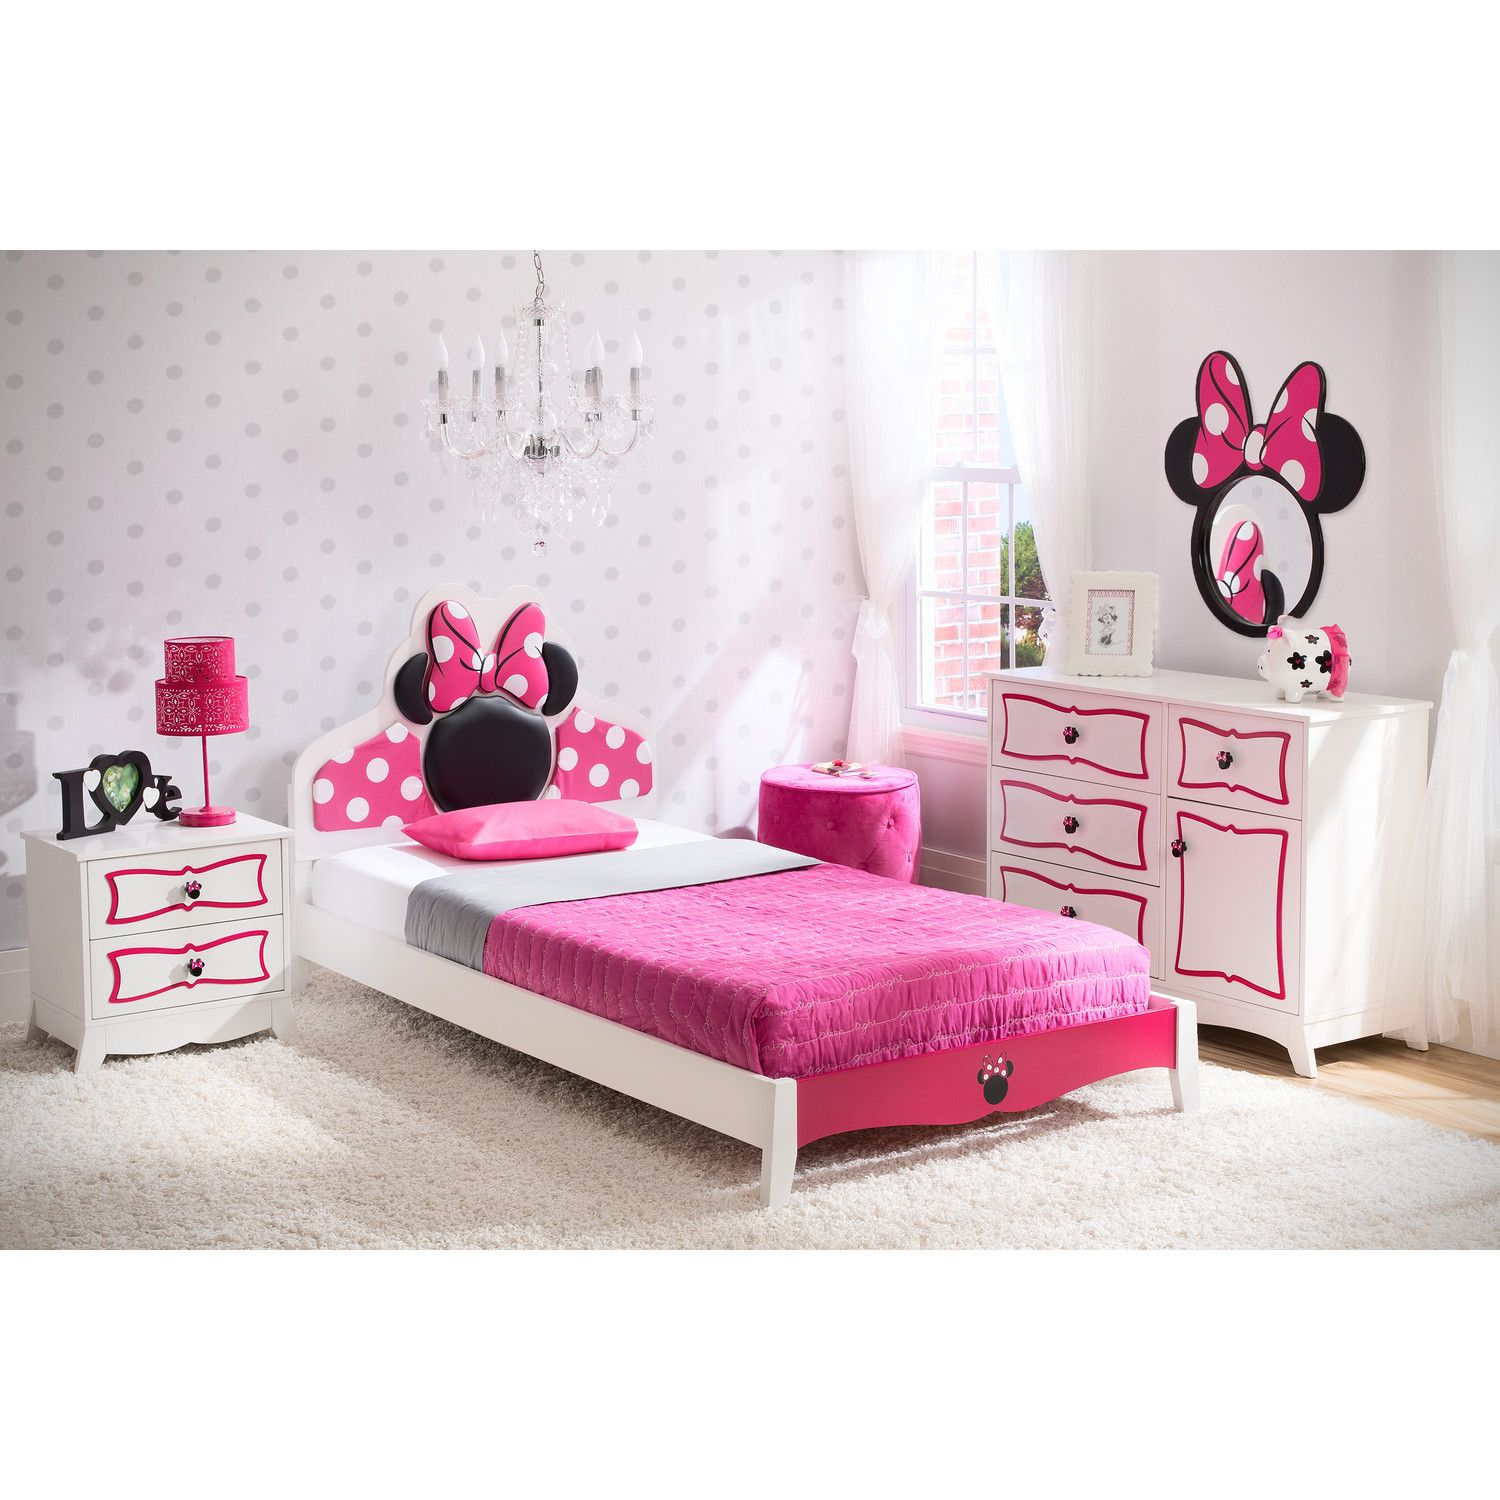 Kid Bedroom Sets Custom Shop Wayfair For Kids Bedroom Sets To Match Every Style And Budget Design Decoration